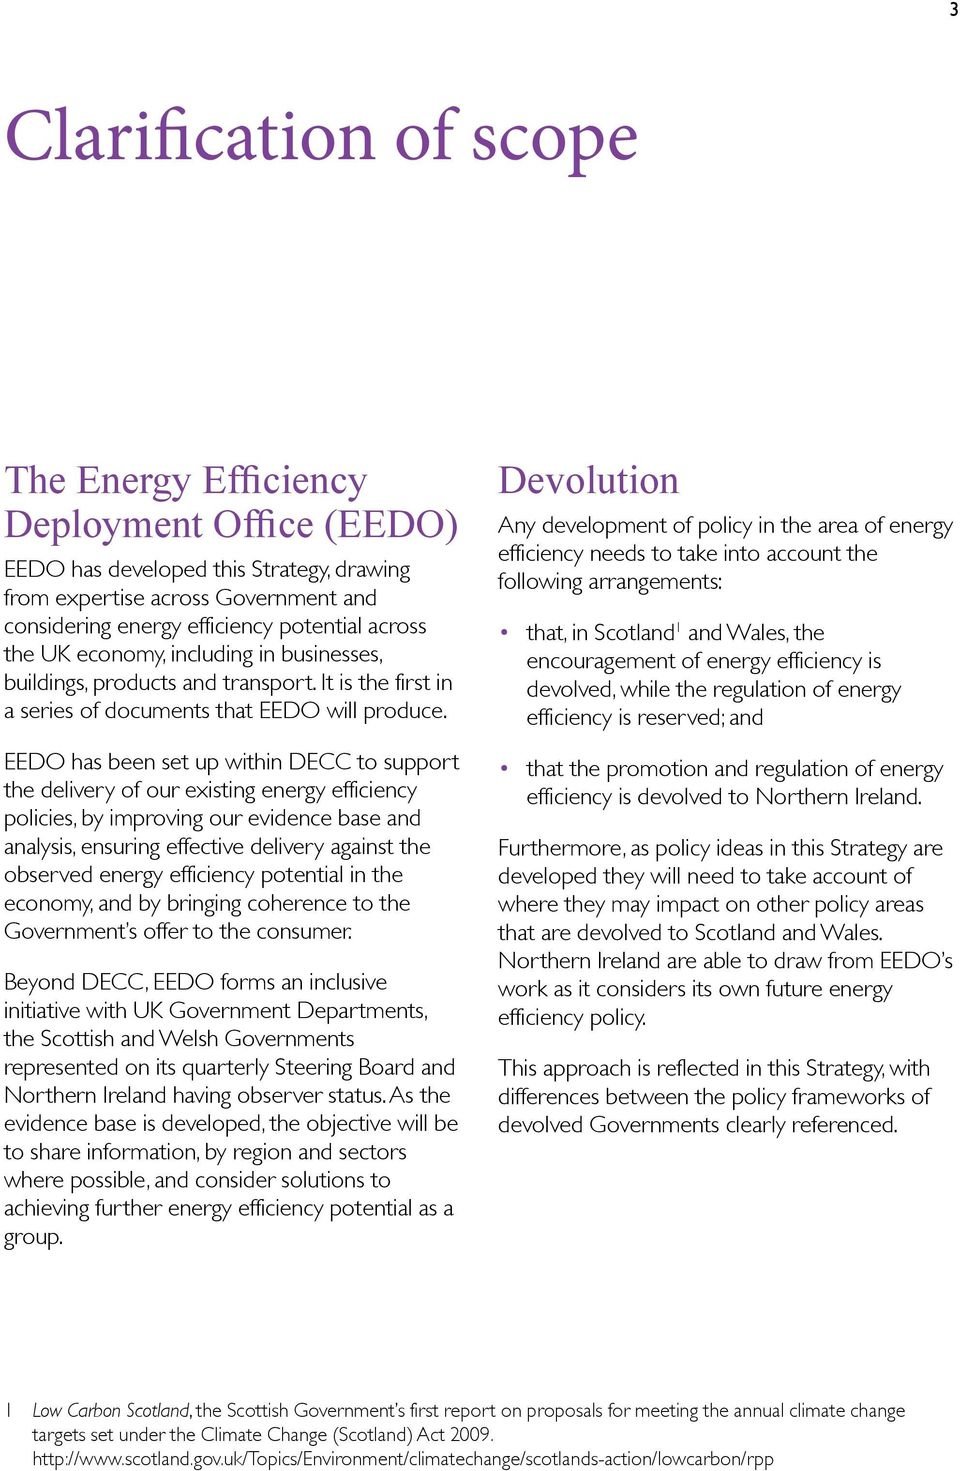 EEDO has been set up within DECC to support the delivery of our existing energy efficiency policies, by improving our evidence base and analysis, ensuring effective delivery against the observed